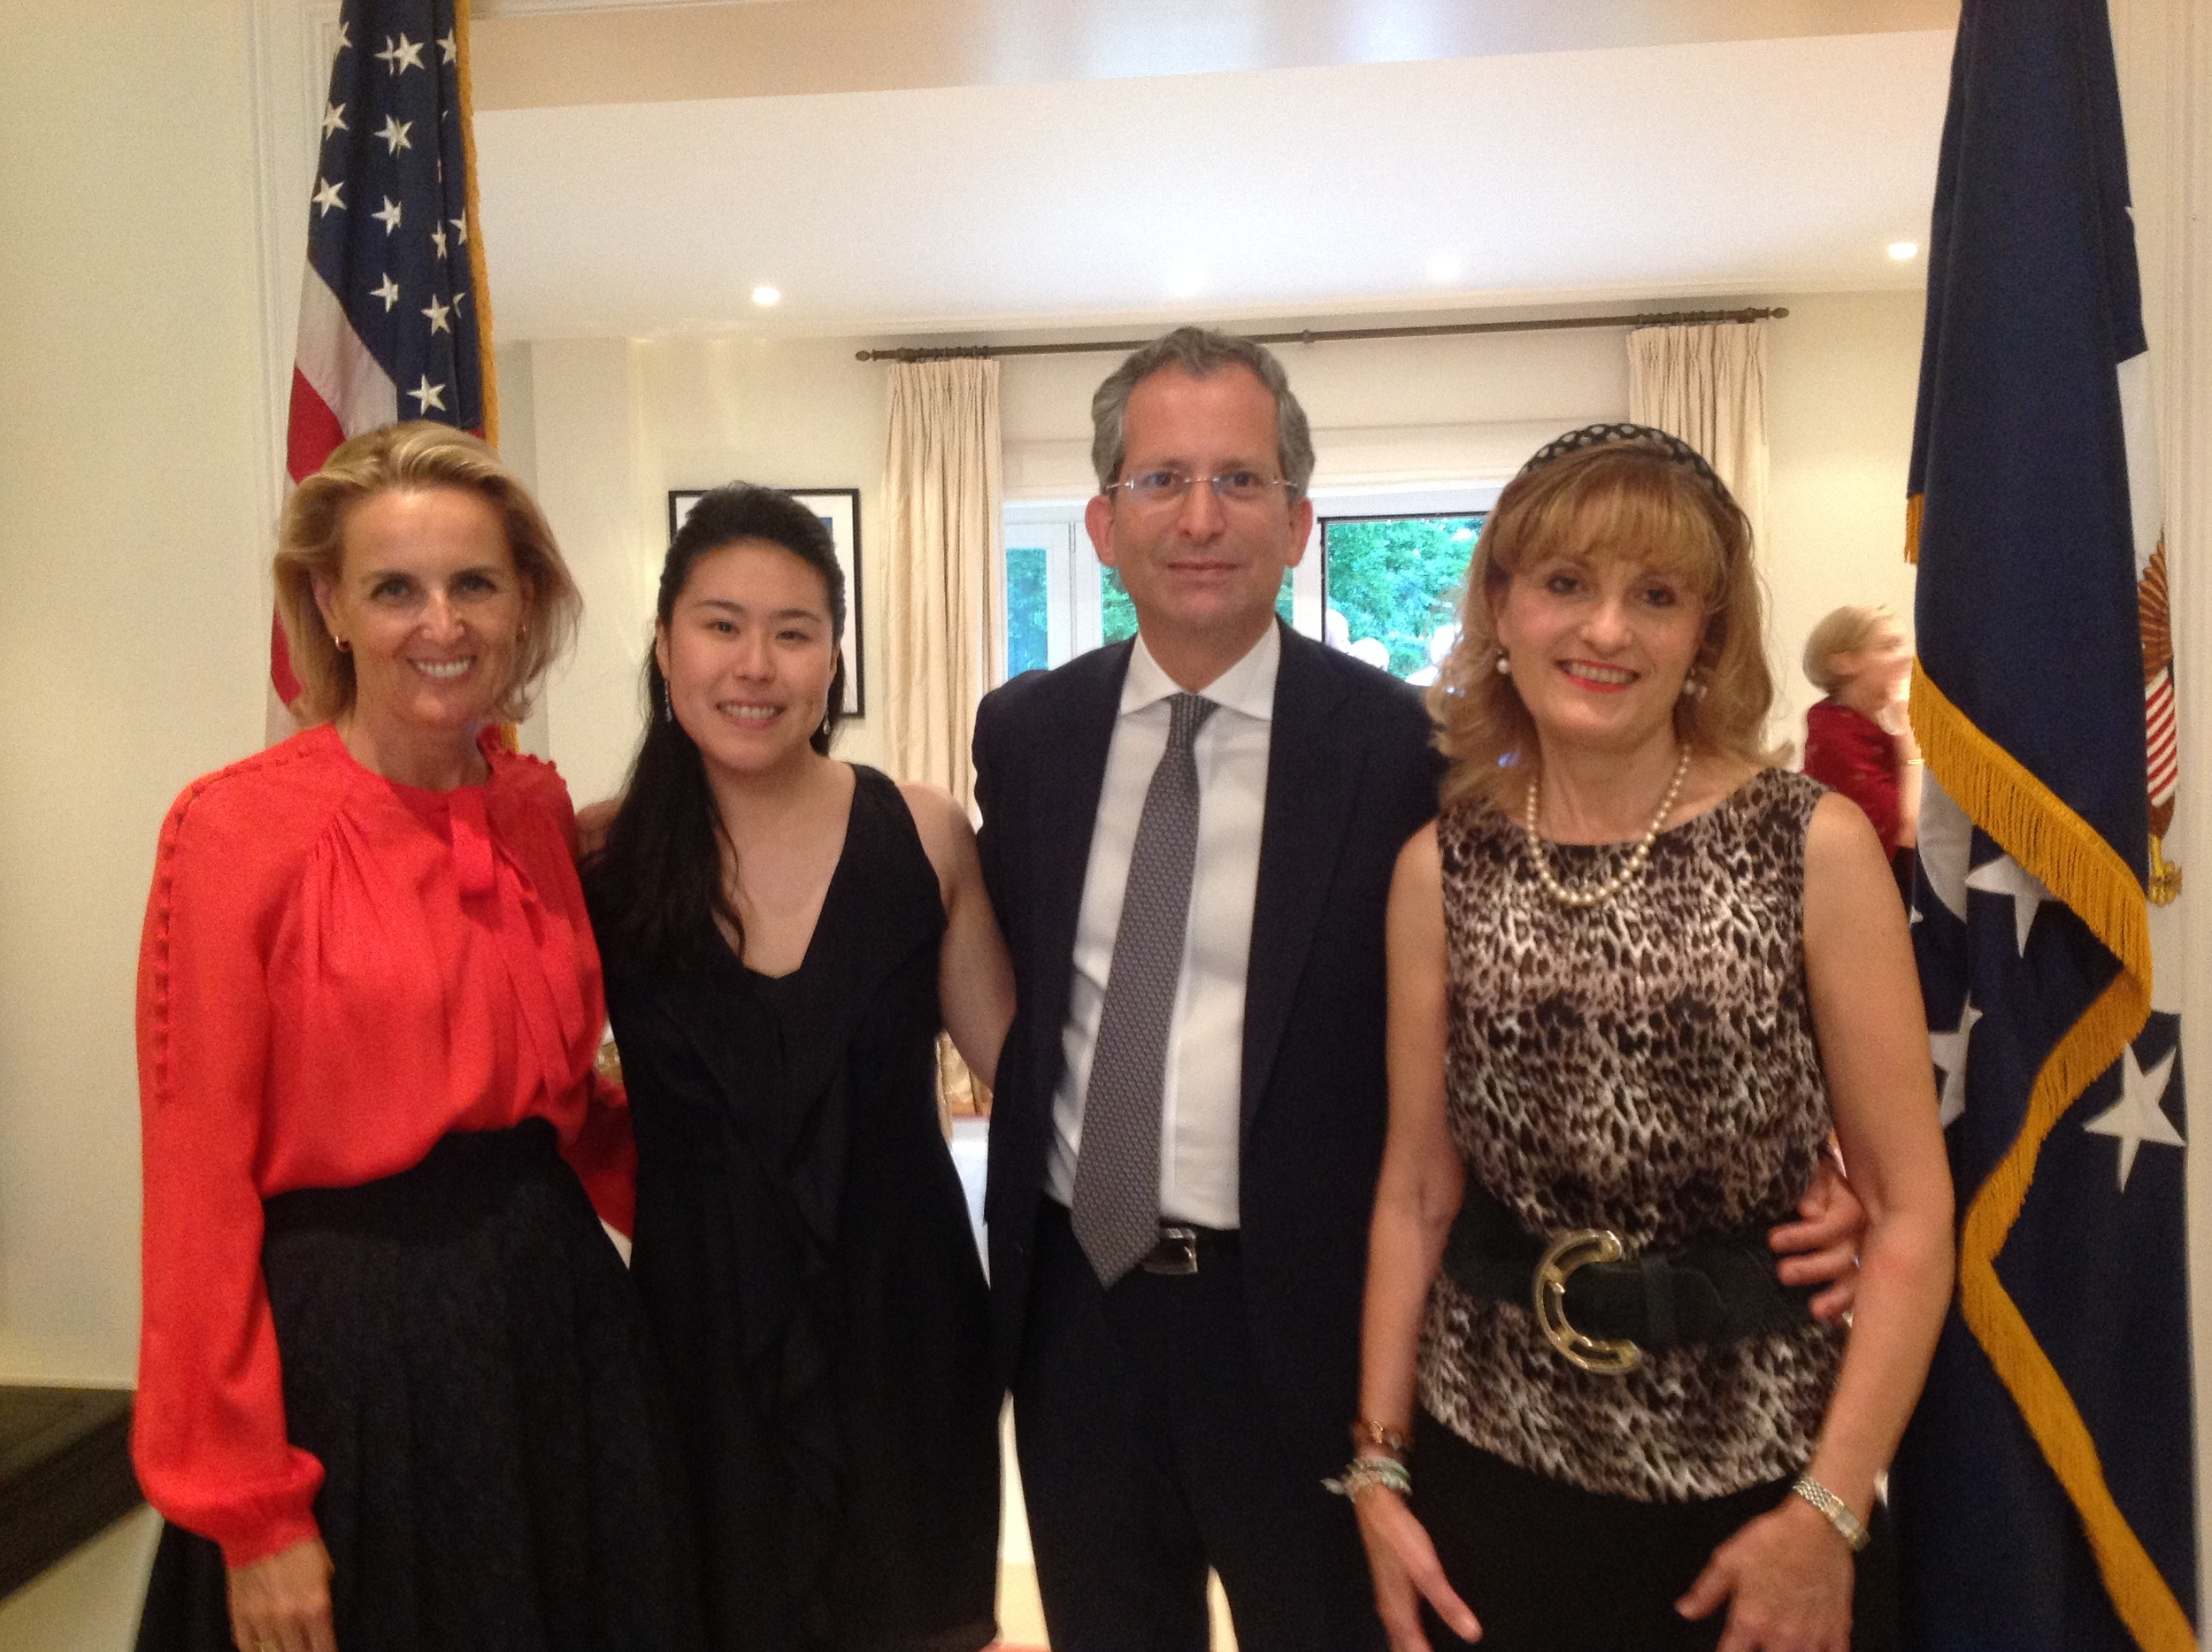 From left to right:  Mrs. Alessandra Mac Crohon Gardner, cellist Deborah Pae, Ambassador Anthony L. Gardner, and pianist Dana Protopopescu